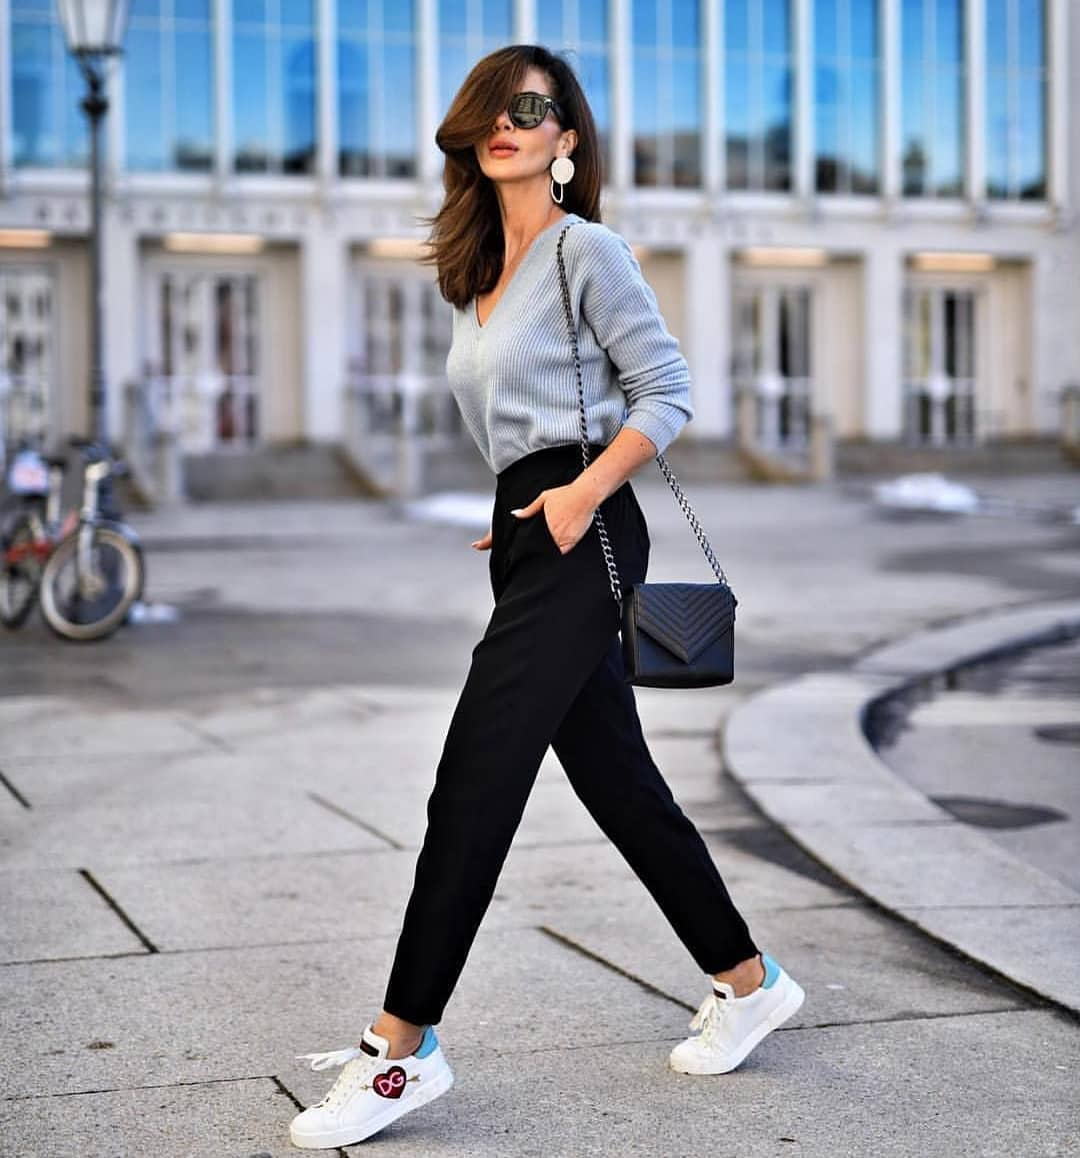 How To Wear Black Pants With White Sneakers This Spring 2020